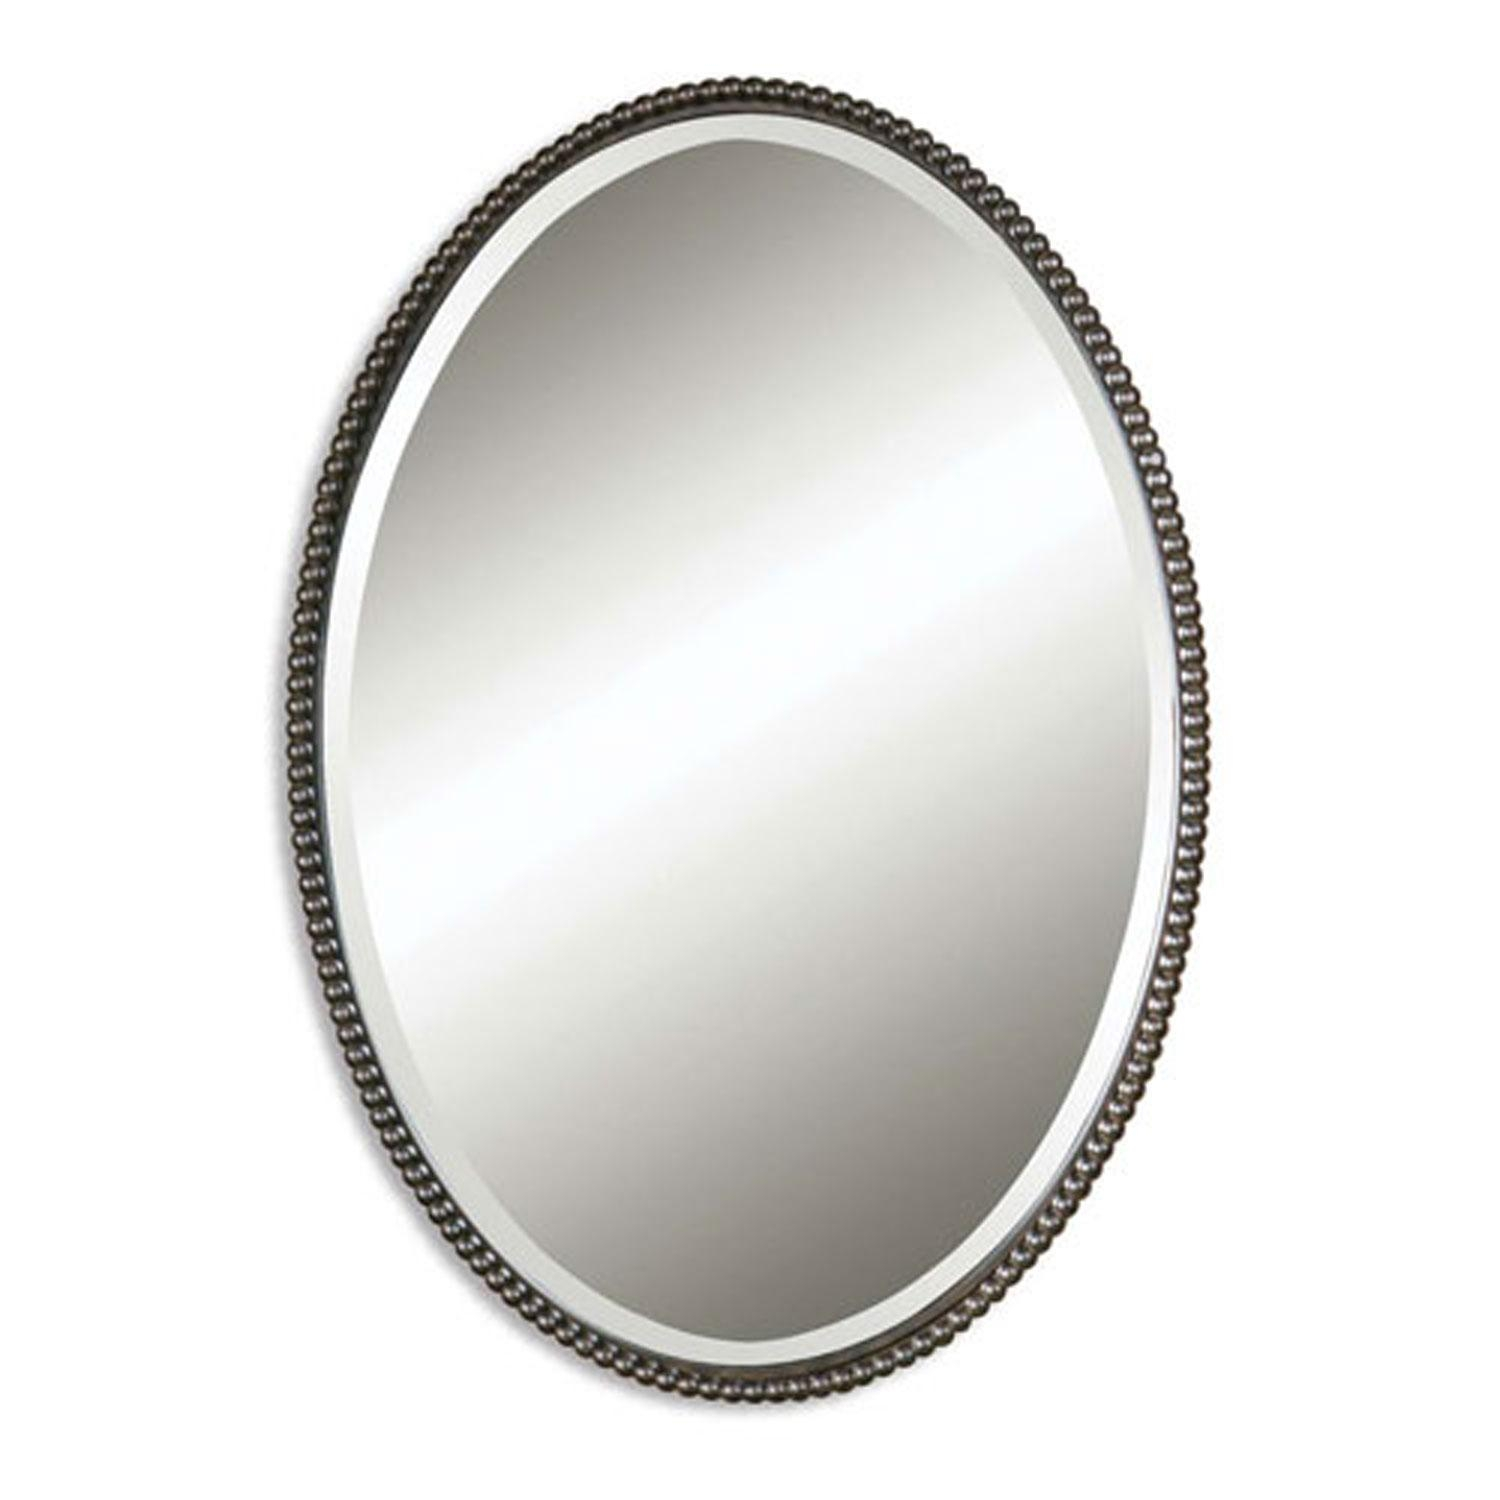 Transitional Mirrors | Bellacor Inside Bevelled Oval Mirror (Image 18 of 20)